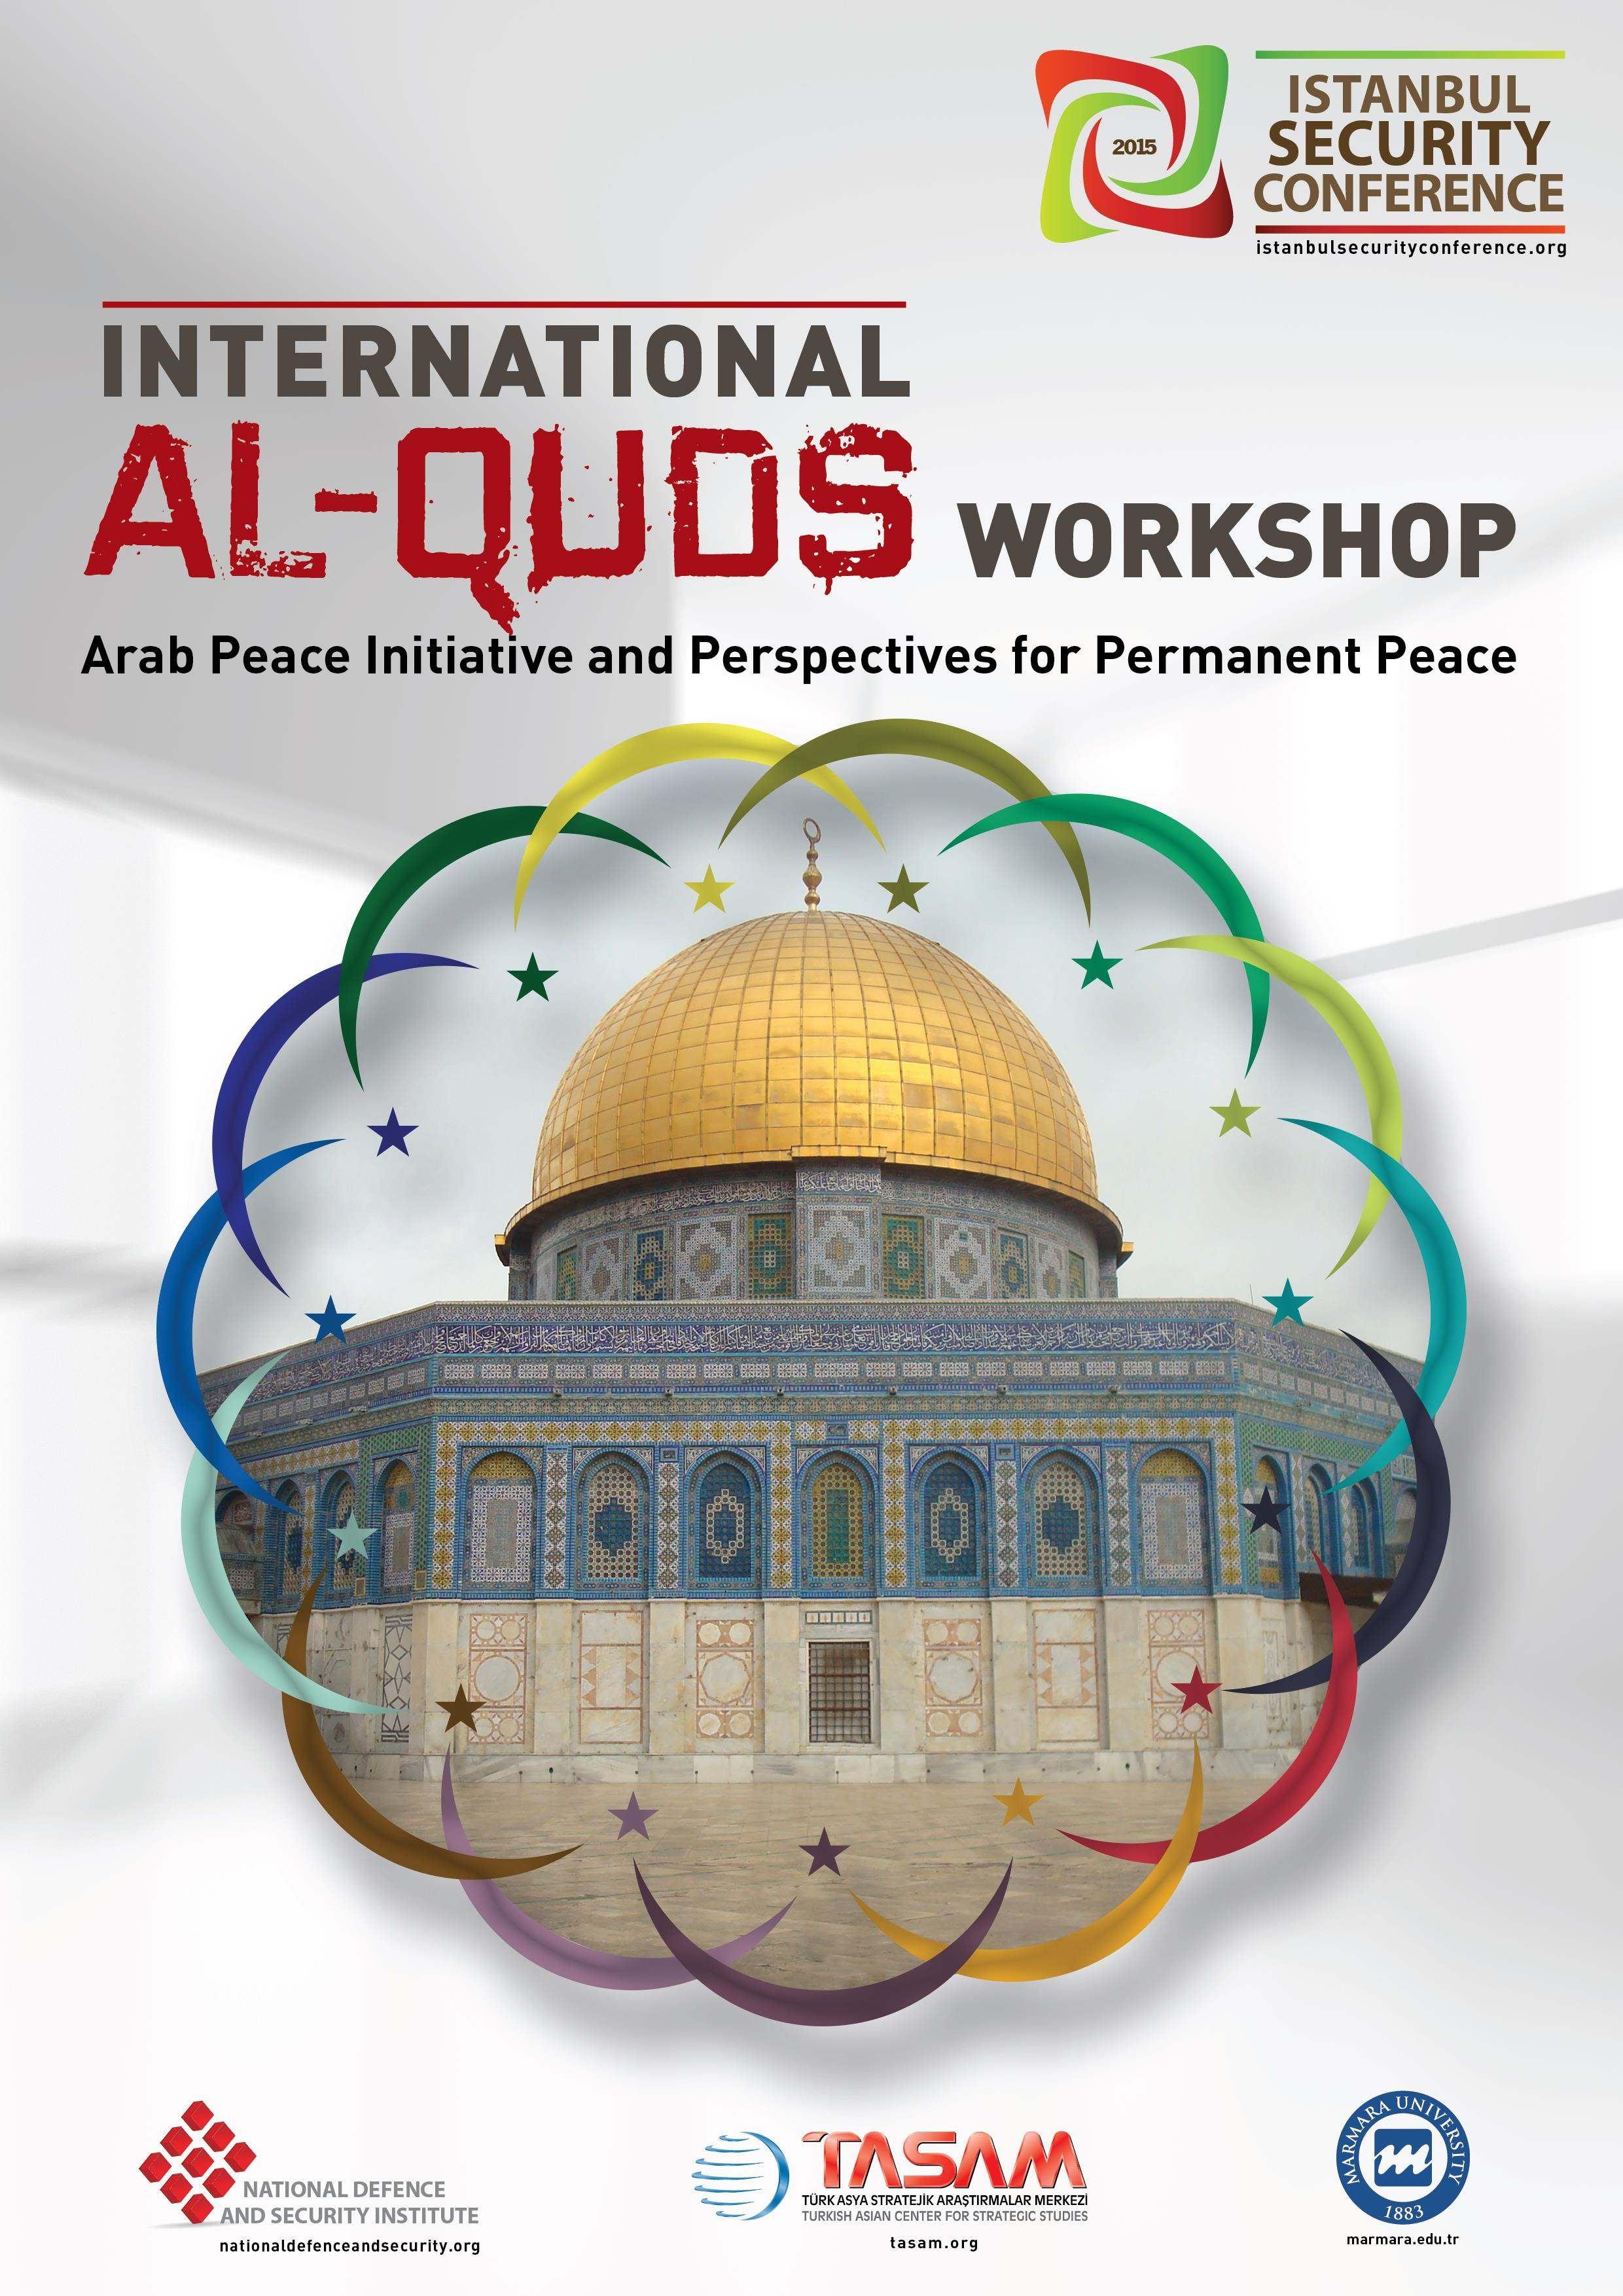 International Al-Quds Workshop | Istanbul Security Conference 2015